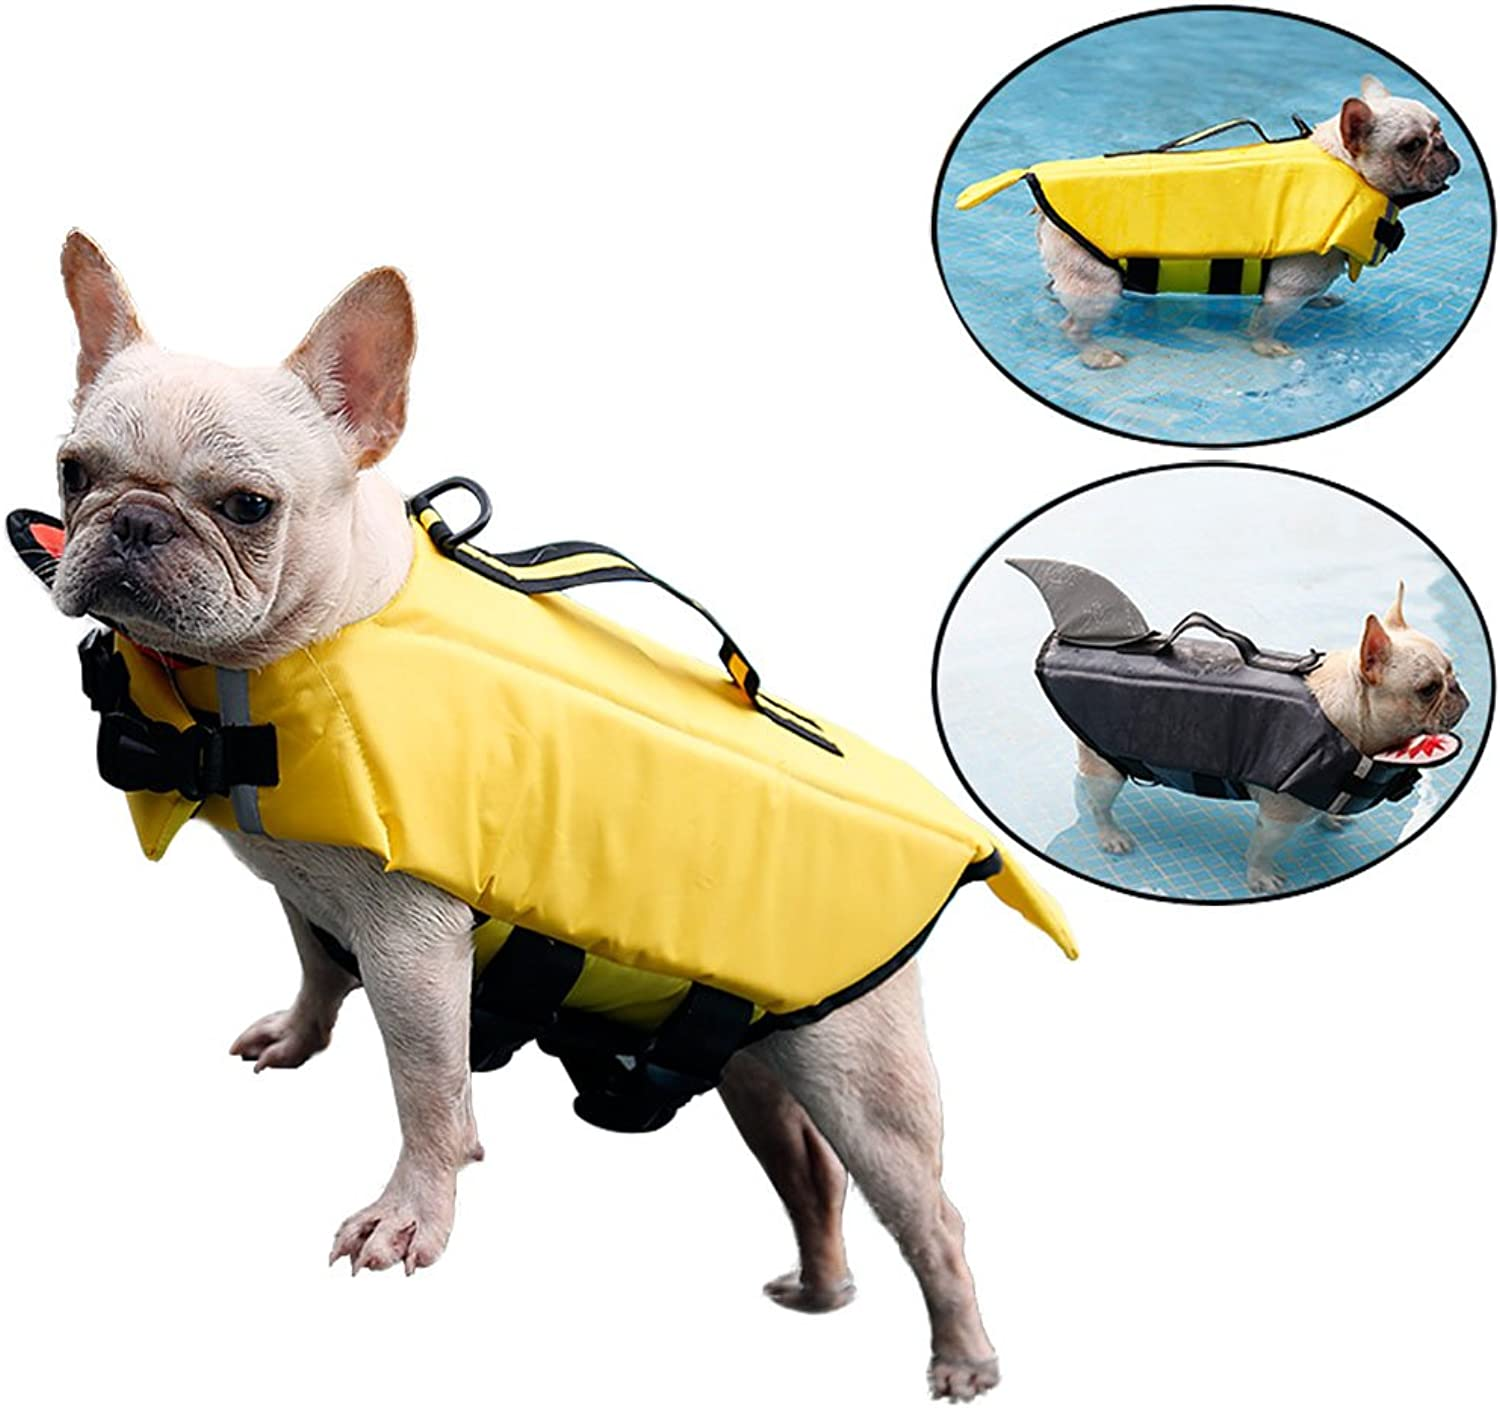 HORHIN Dog Saver Reflective Life Jacket, Pet Safety Floatation Swimsuit Vest with Adjustable Buckles,Dog Lifesaver Preserver Coat for Swimming, Boating, Hunting (Small, Yellow)